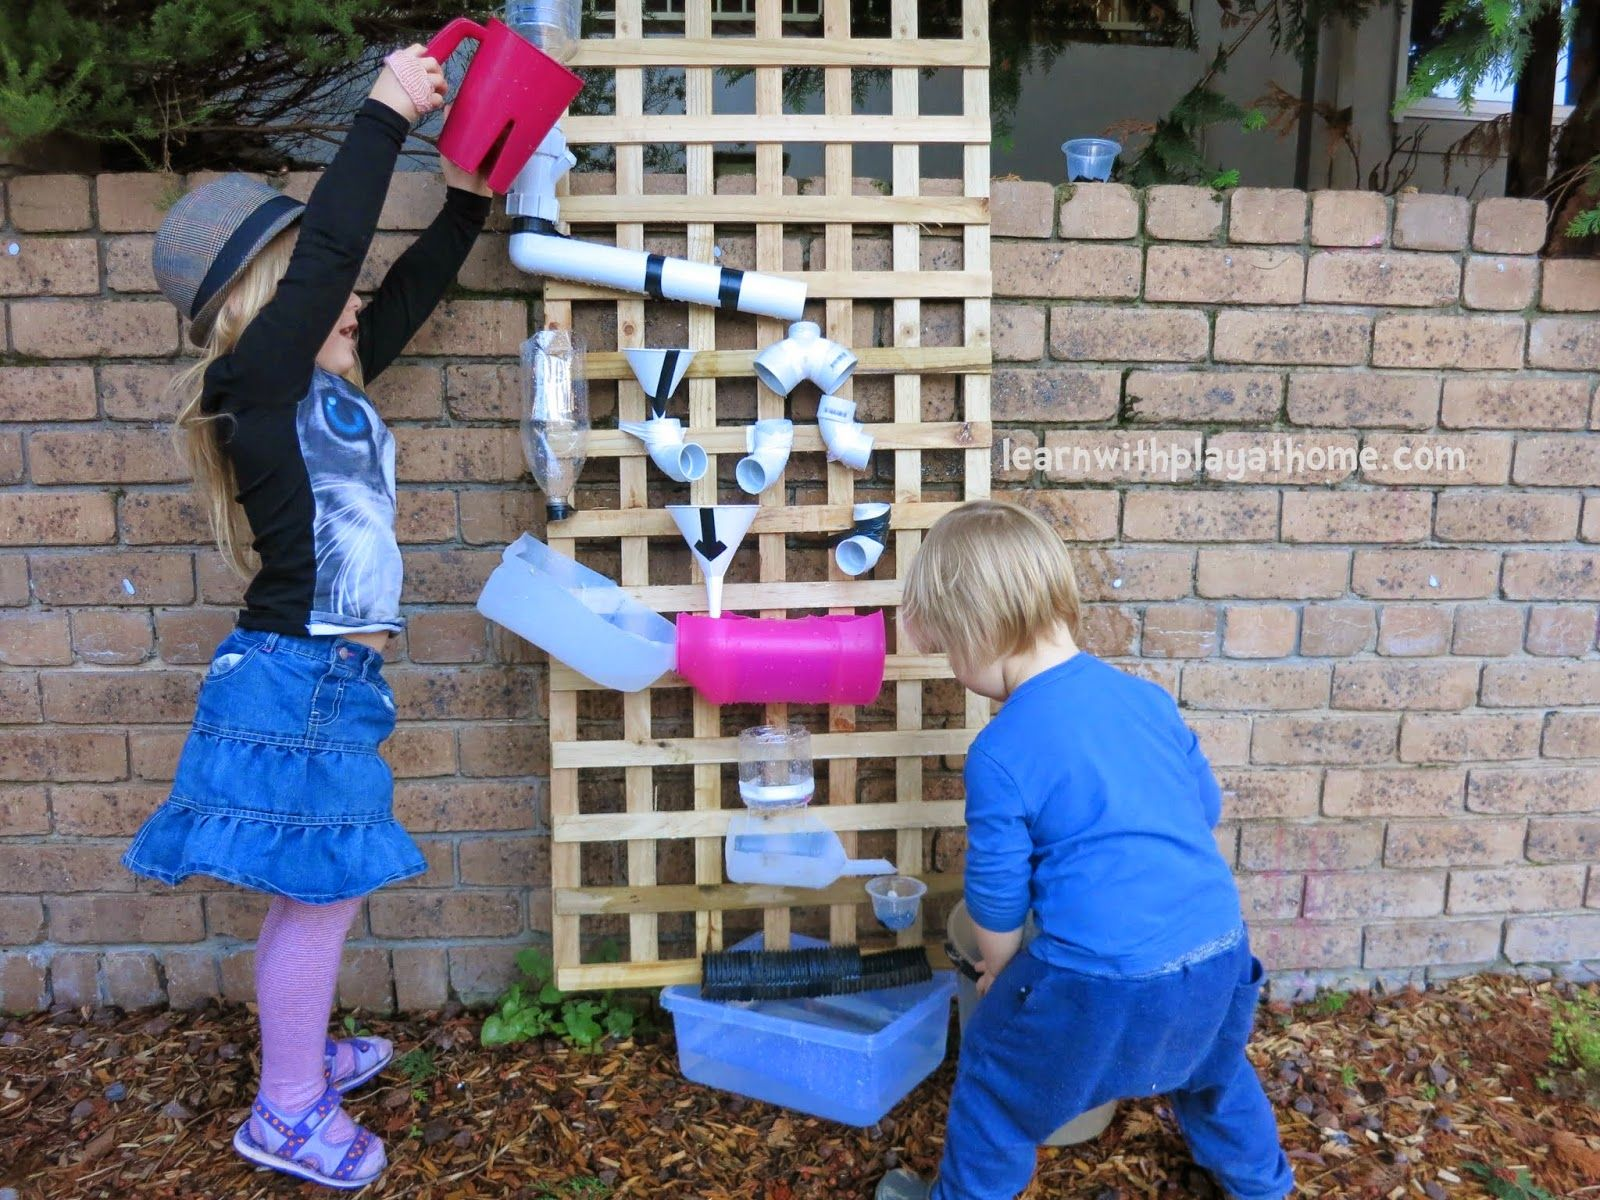 Diy patio water wall the interior frugalista diy patio water wall - How To Make A Water Wall For Kids Water Walls Plays And Water